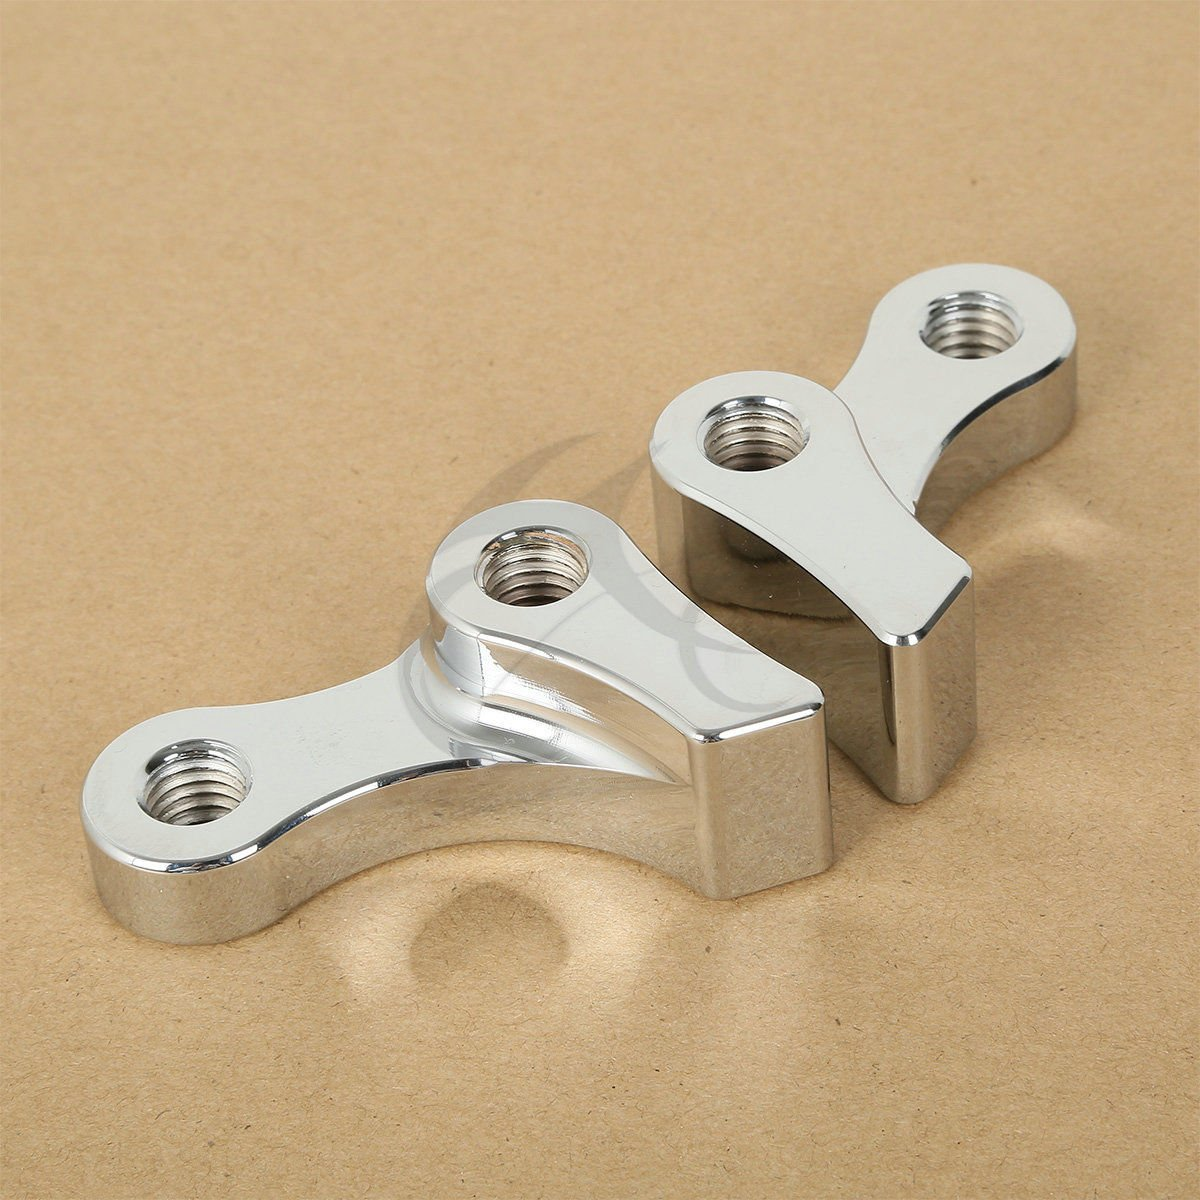 Wide Glide 95-05 XFMT Chrome 1 INCH Adjustable Lowering KIT Compatible with Harley Dyna Super